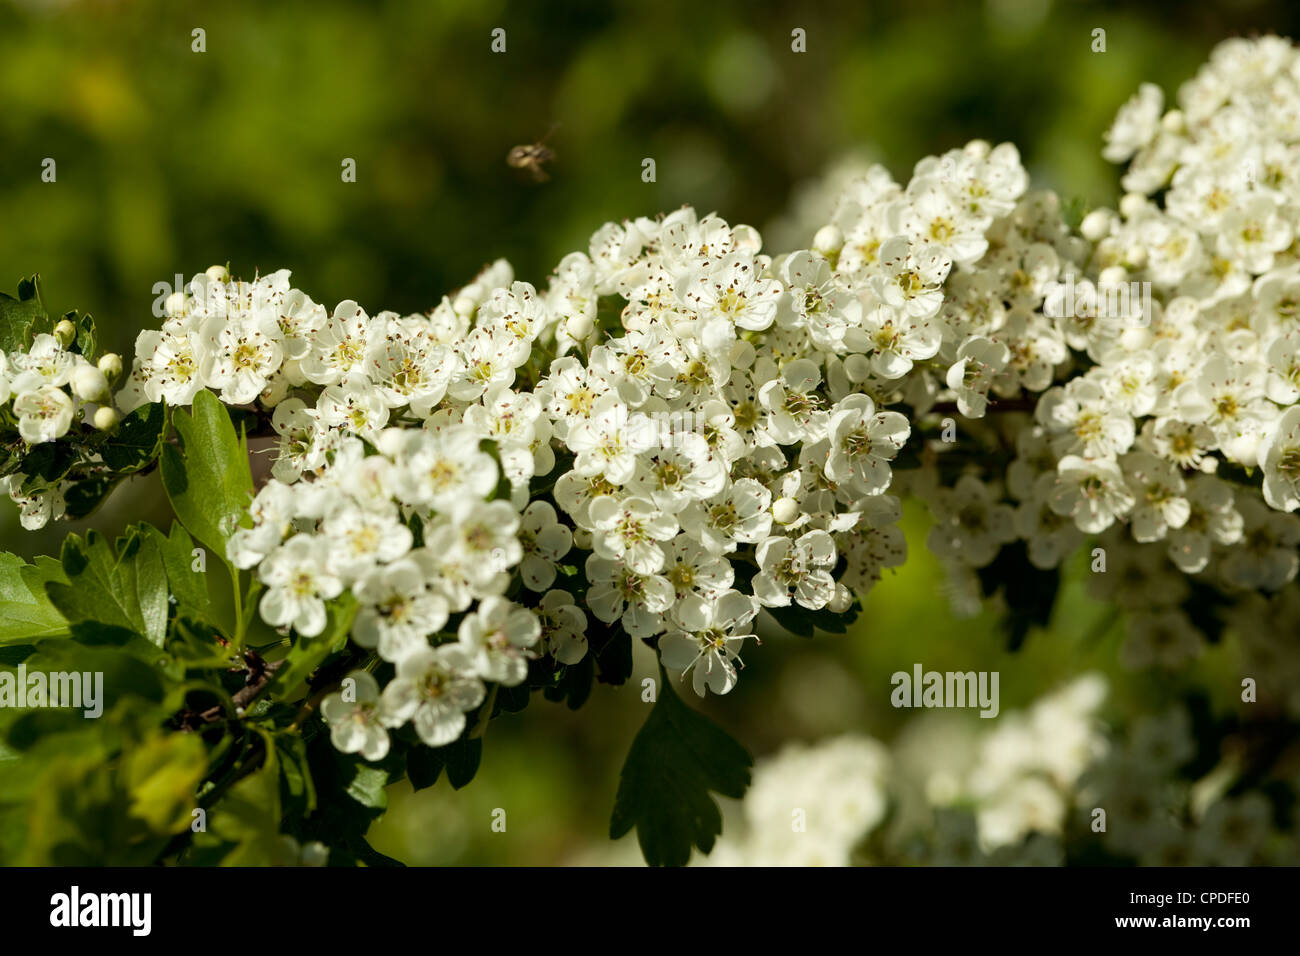 hawthorn tree with white flowers on branch Stock Photo